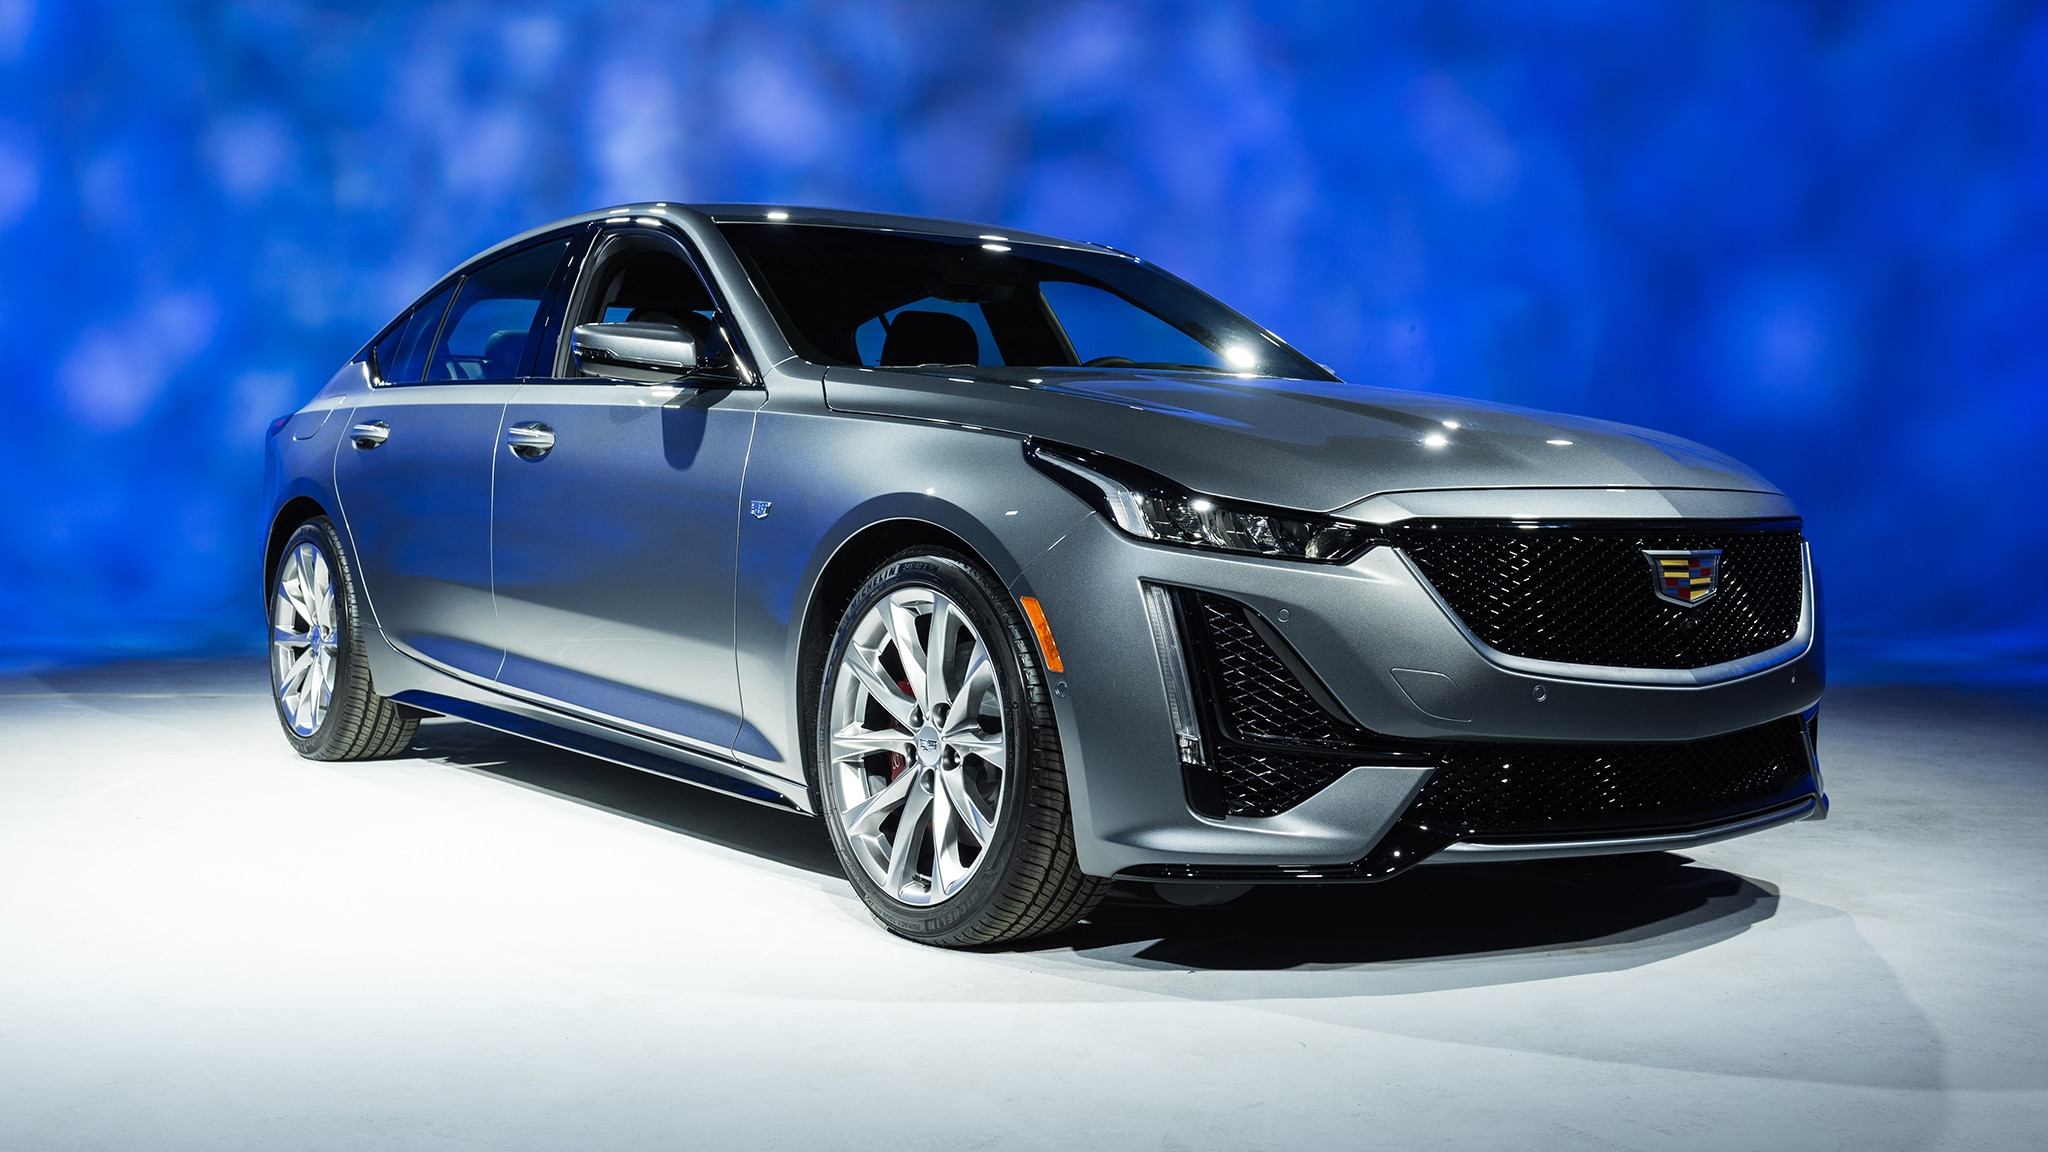 2020 Cadillac CT5 Official Photos and Info: It's a Huge ...